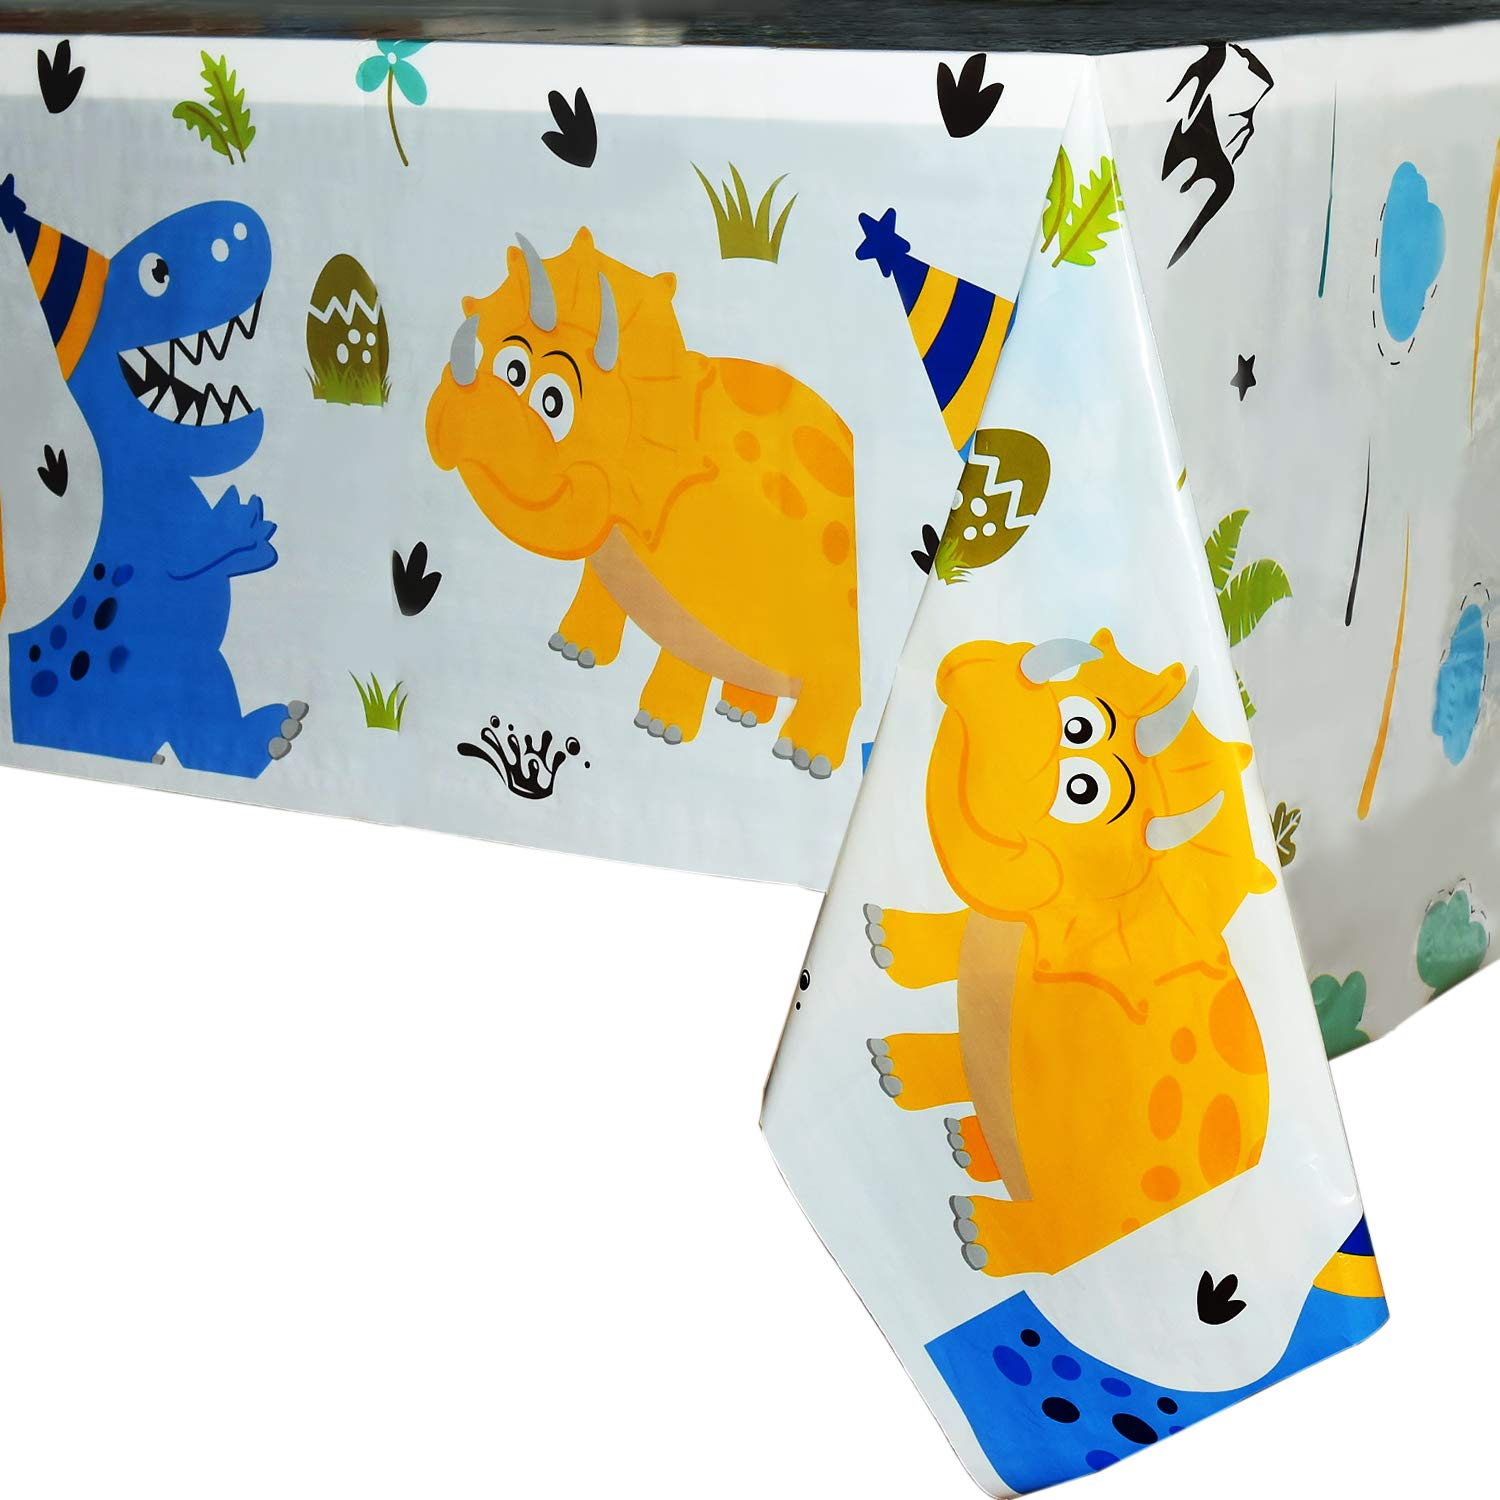 WERNNSAI Dinosaur Party Tablecloth - Dinosaur Party Supplies for Kids Boys Birthday Wedding Baby Shower Decoration 6 Pack 71'' x 43.3'' Disposable Printed Plastic Table Cover for Rectangle Table by WERNNSAI